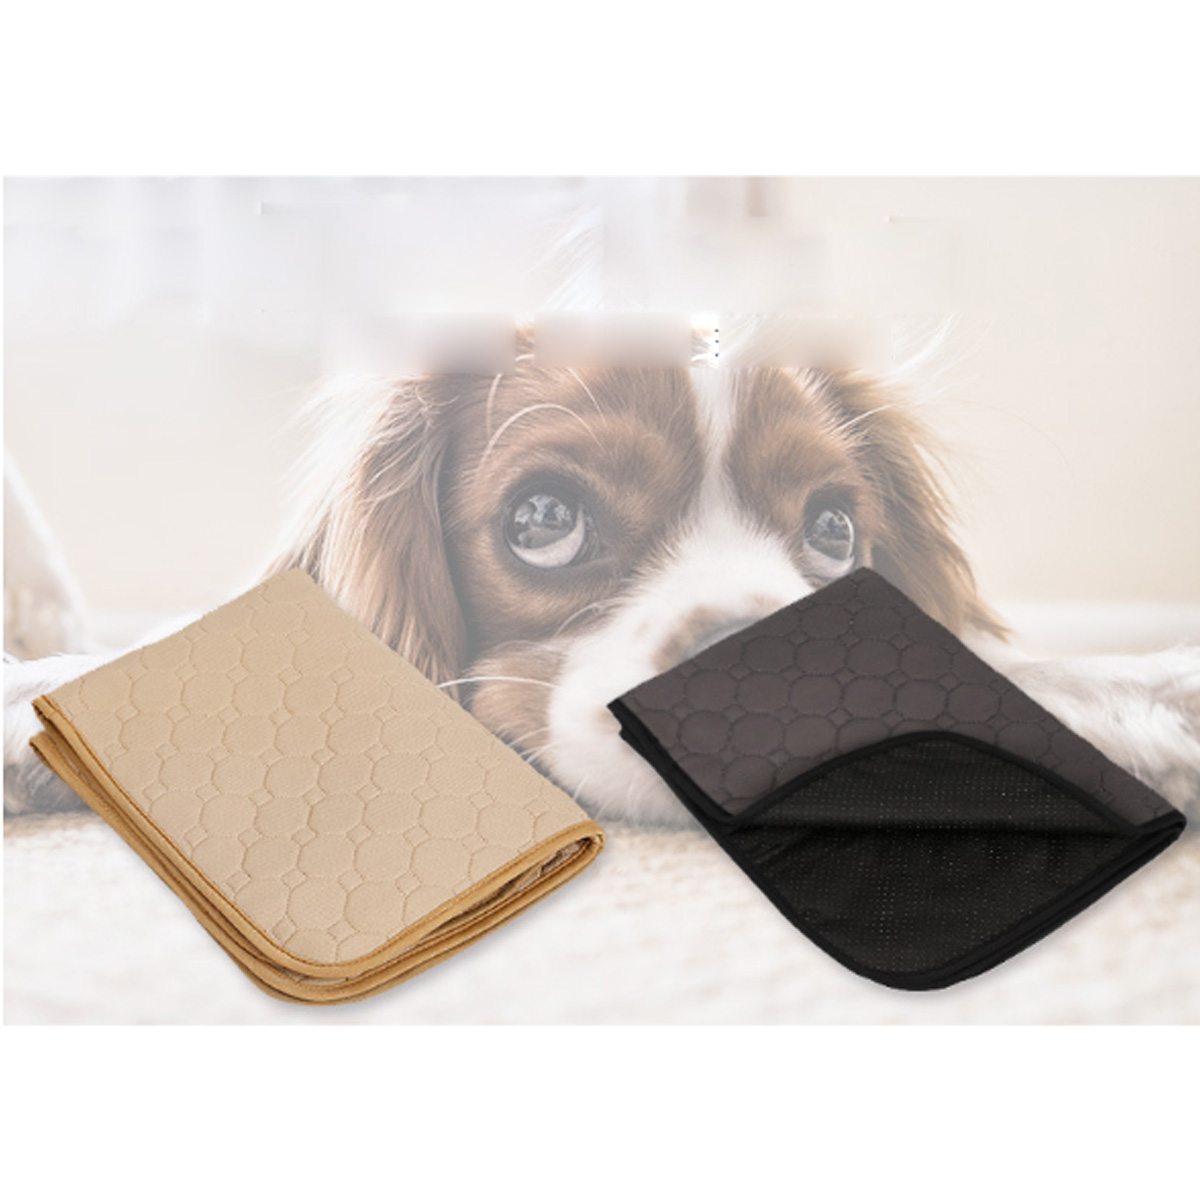 Antibacterial and Super Absorbent Puppy Training Pad for Potty and Pee Training for Dogs 7